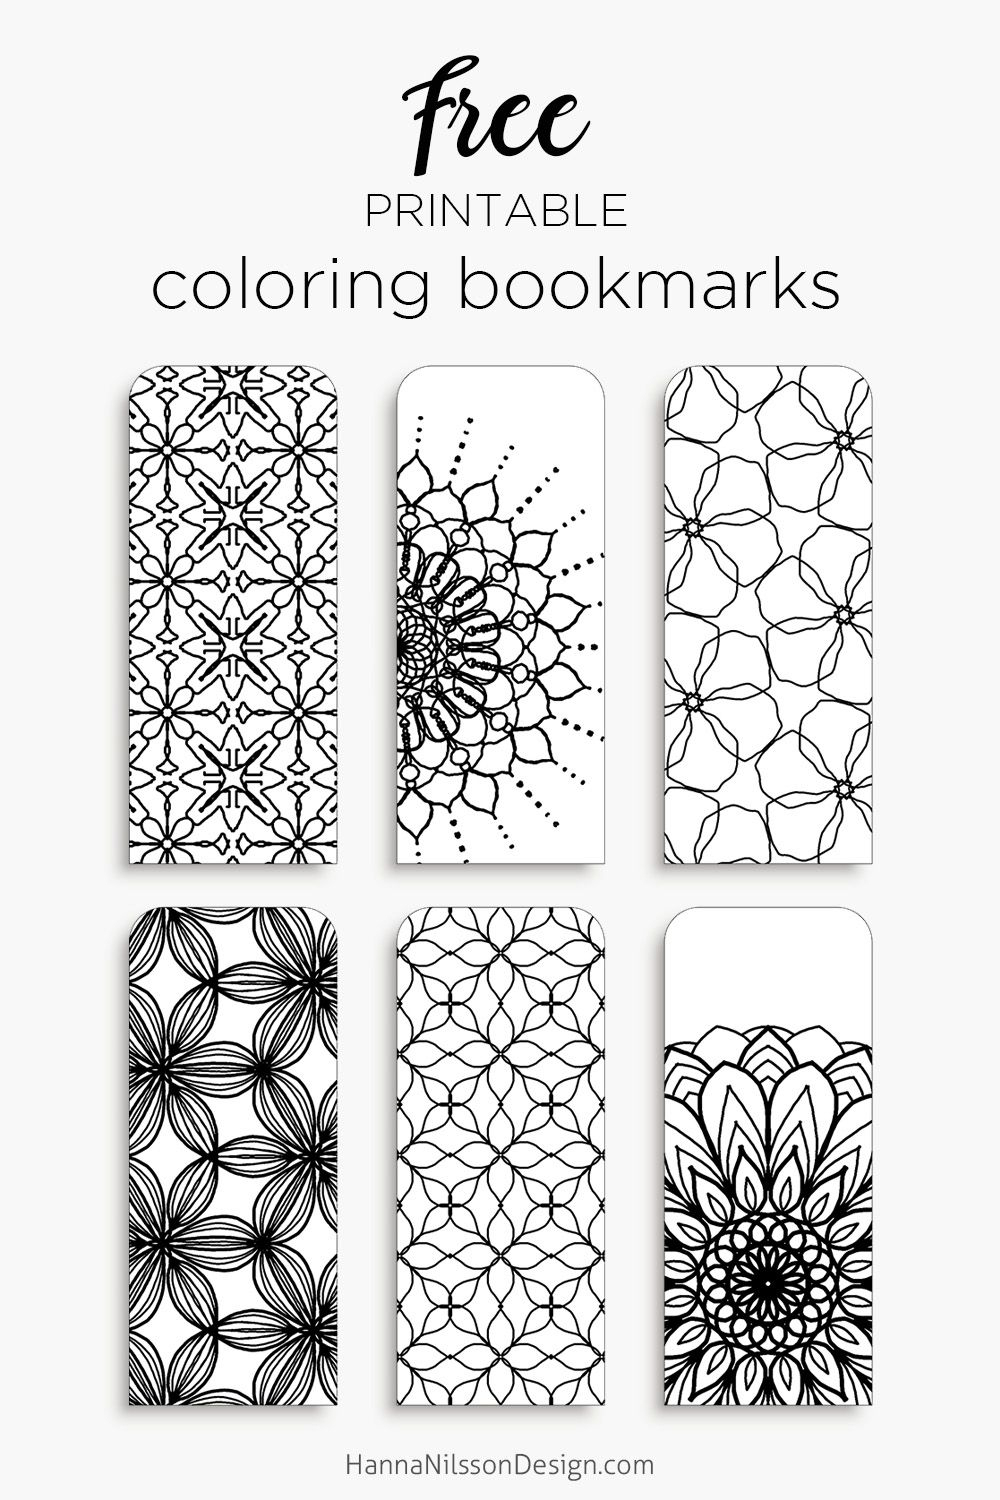 Coloring Pages ~ Free Printable Christmas Bookmarks What You Getng - Free Printable Christmas Bookmarks To Color